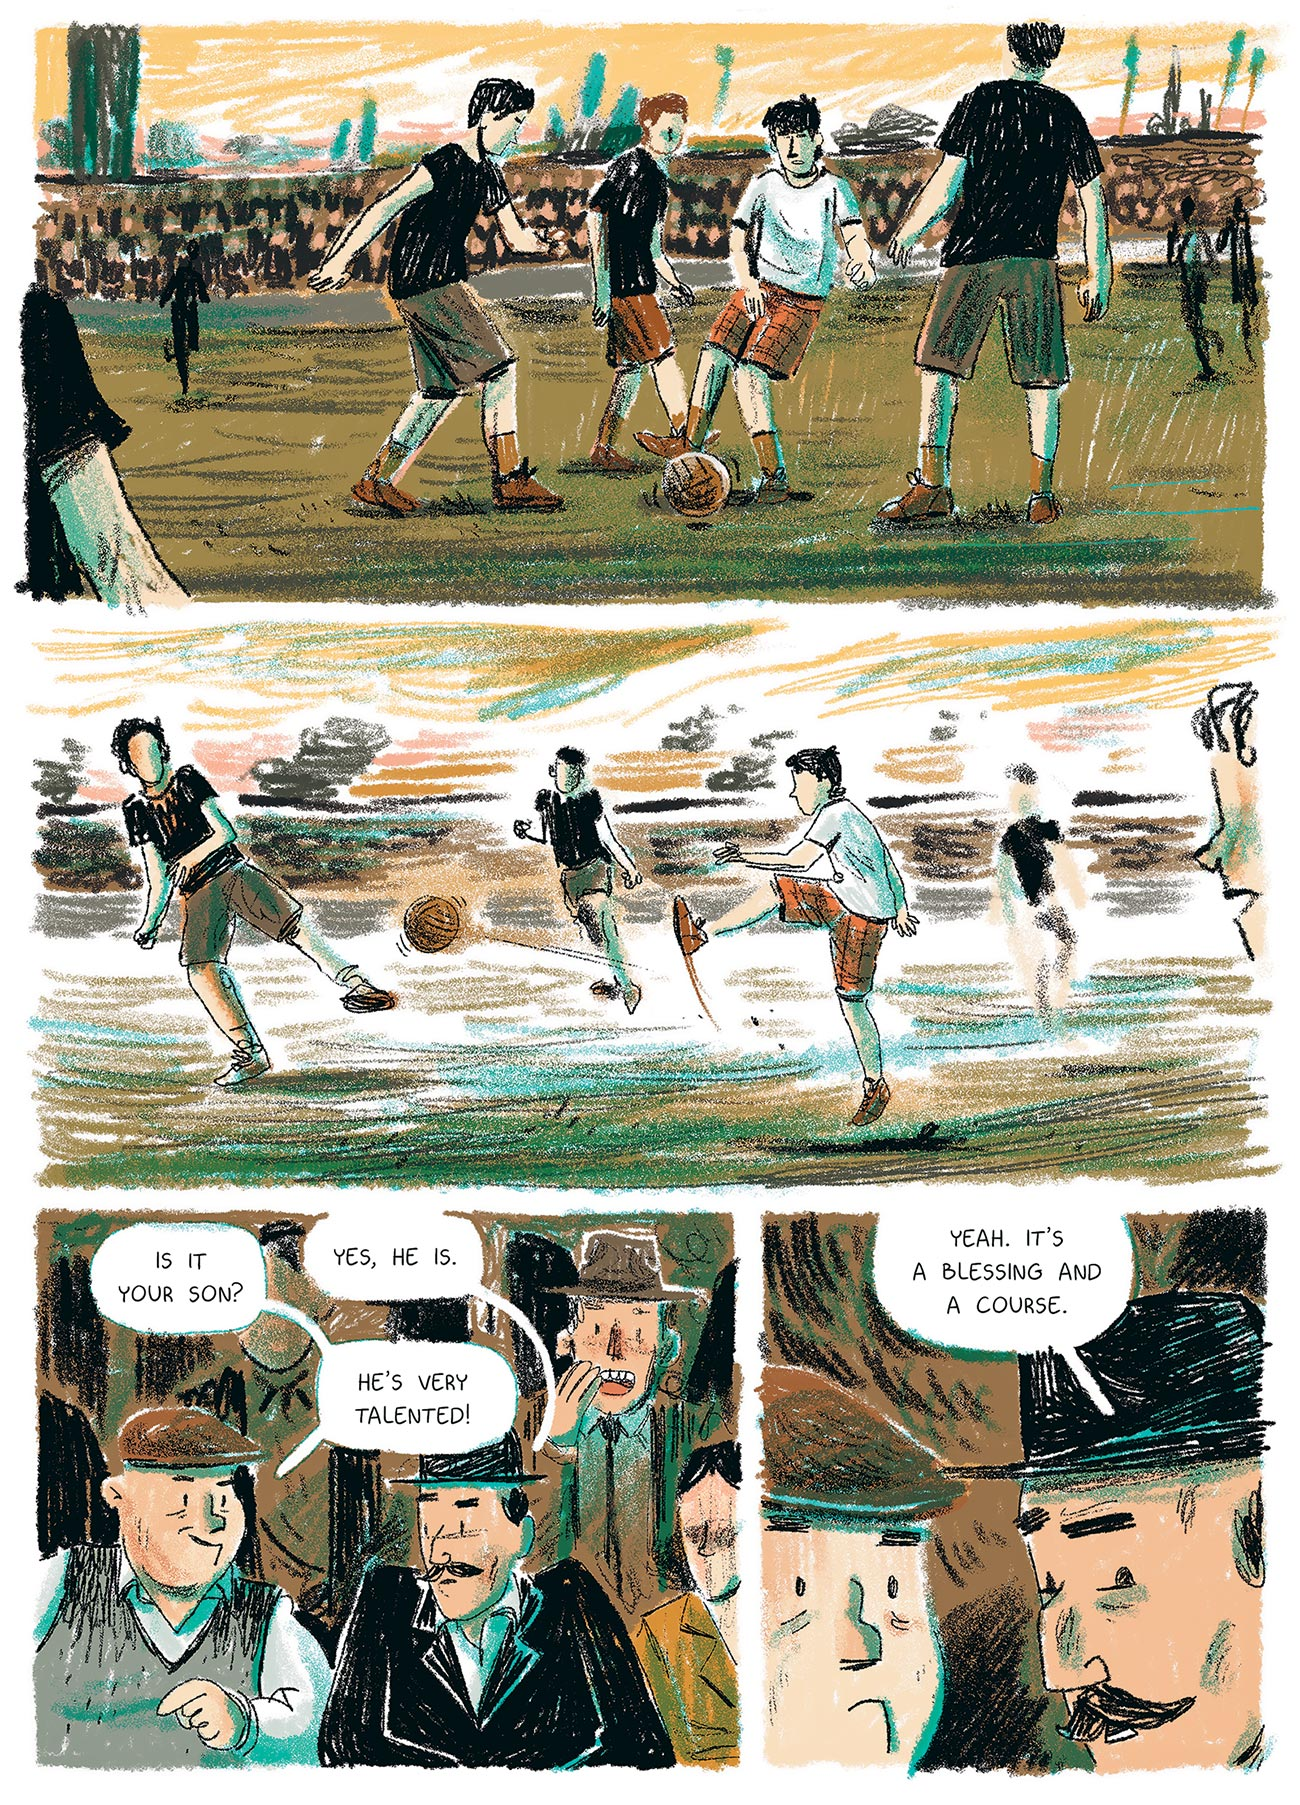 © Marcin Podolec | Ossi | A biographical comic about Oskar Rohr, football player. | Story: Julian Voloj. | Published by: Steinkis, 2019. | 2018